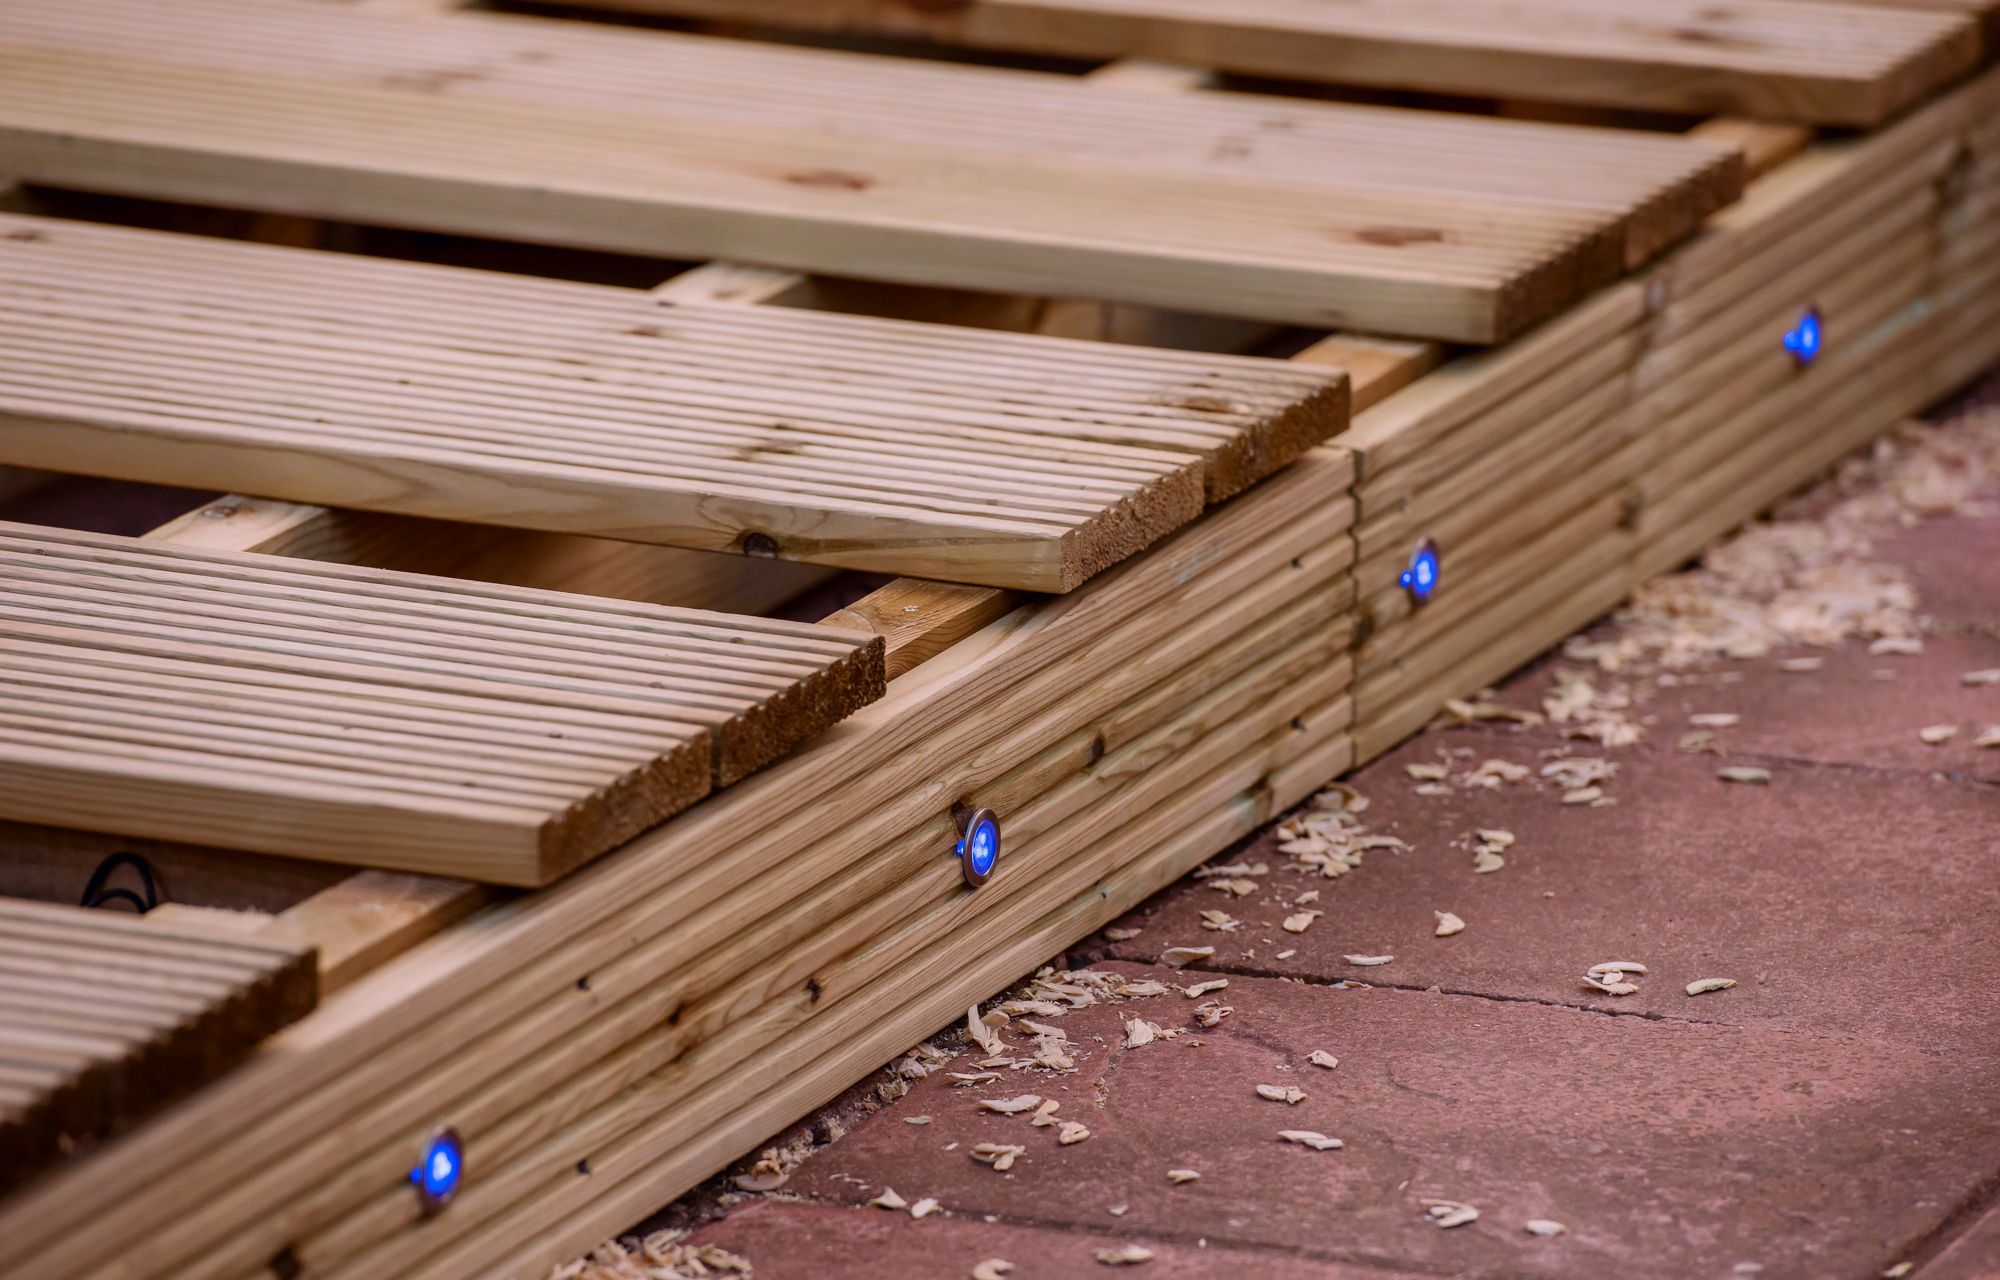 How to install deck lighting | Wickes.co.uk